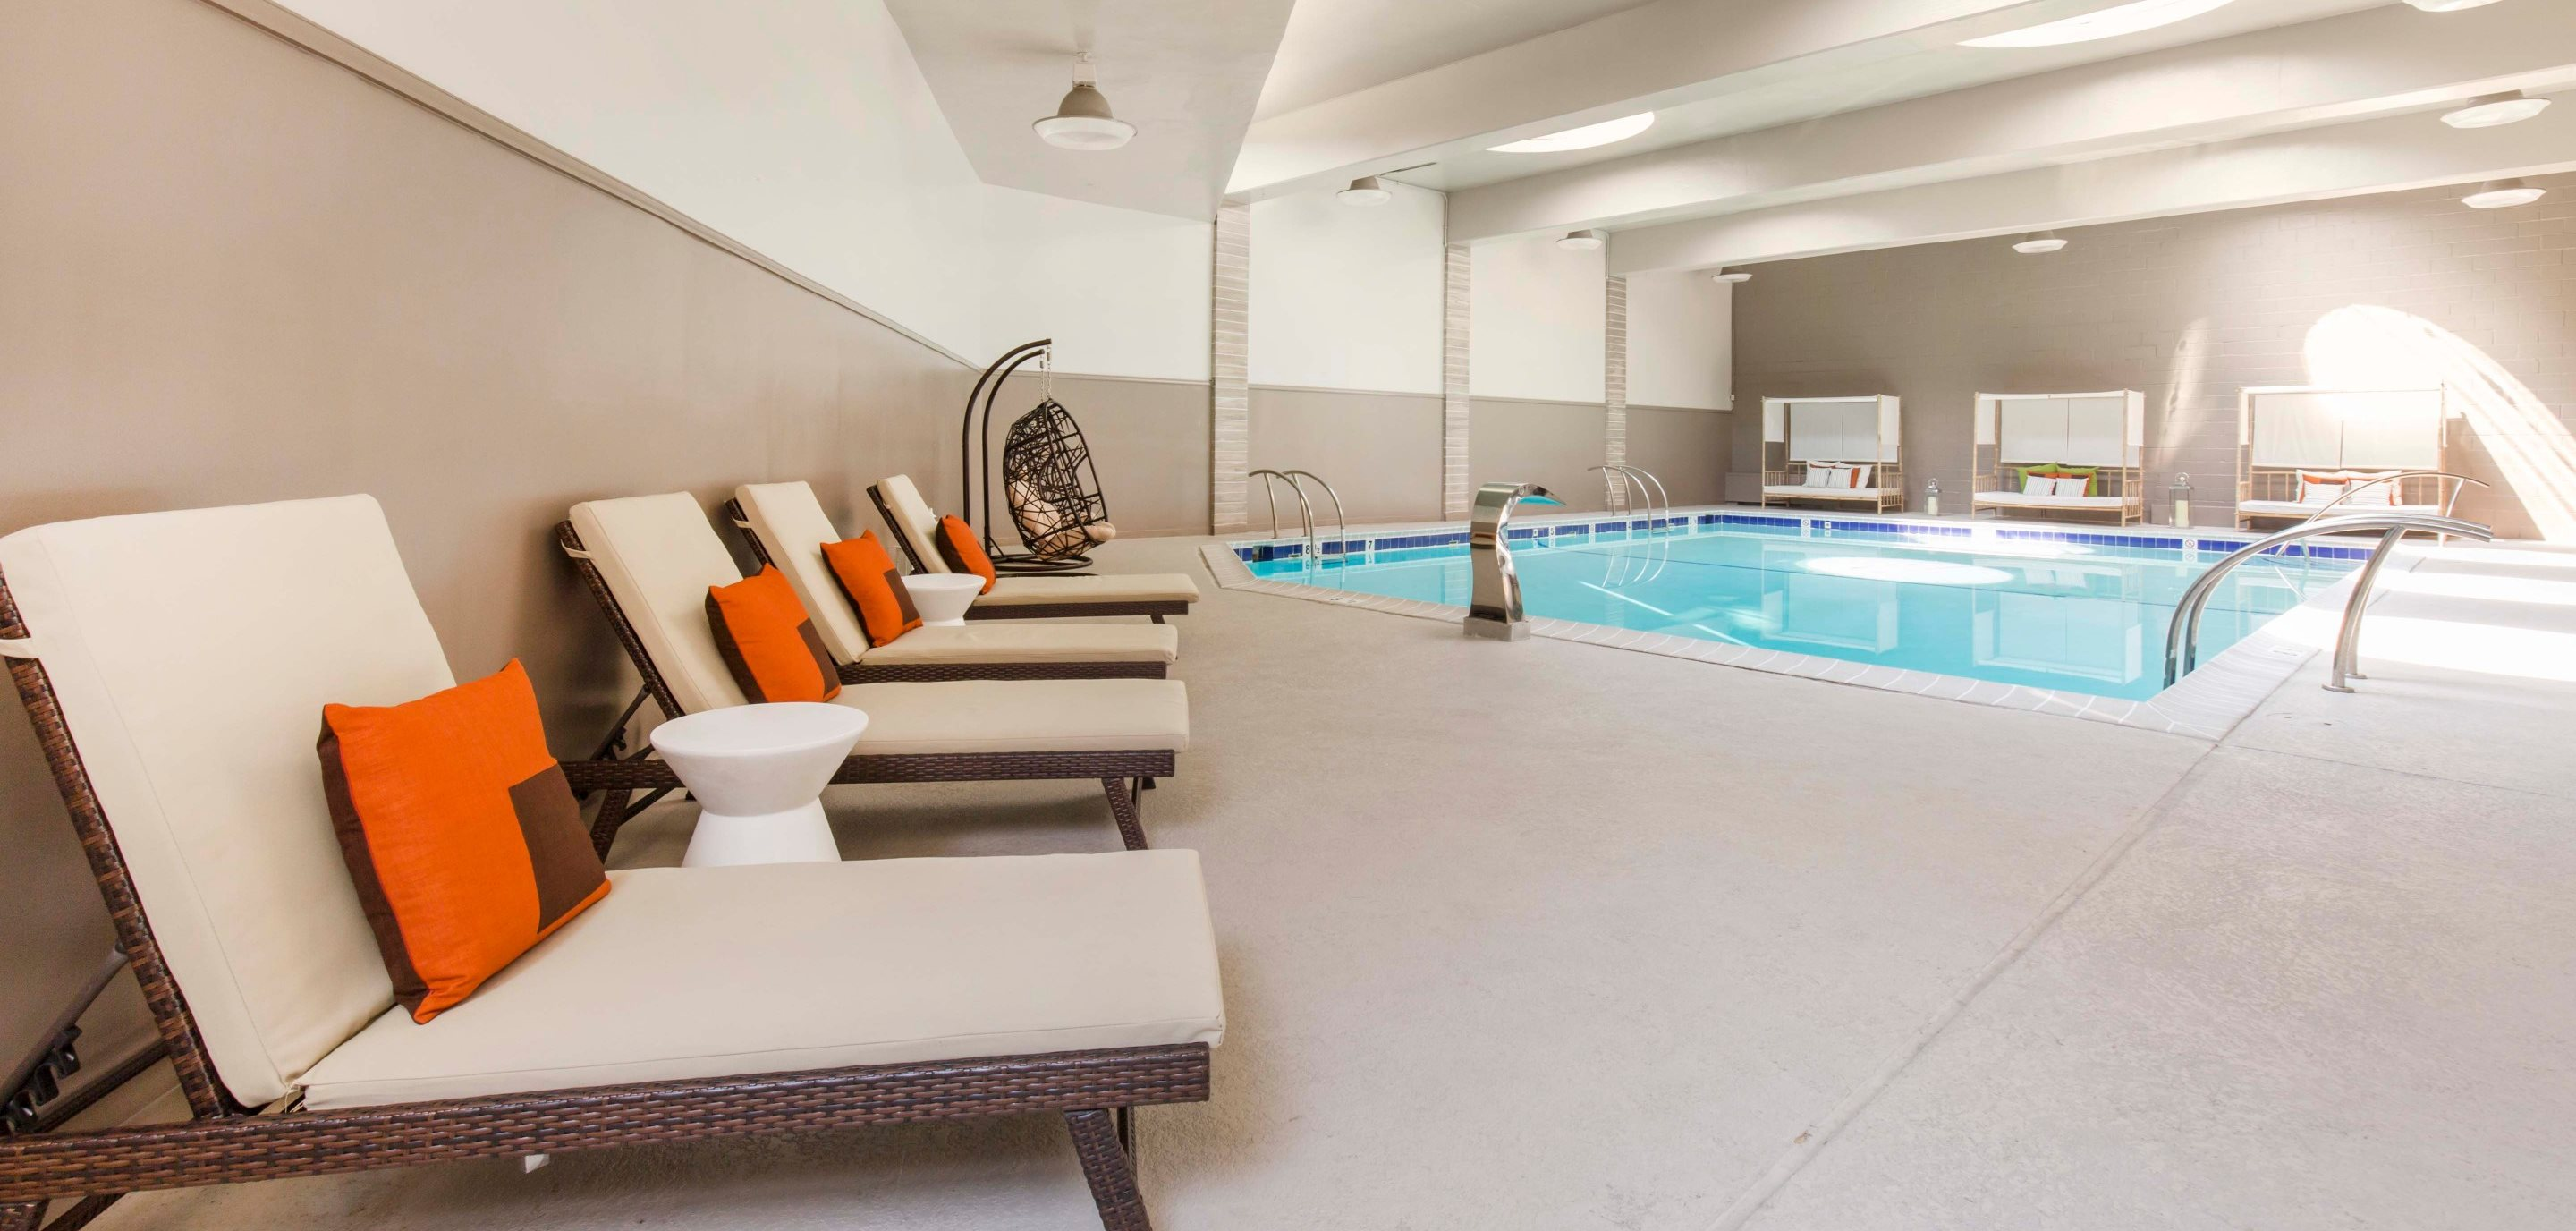 Indoor swimming area with tan and brown lounge chairs, orange accent pillows, and natural sunlight coming through the ceiling